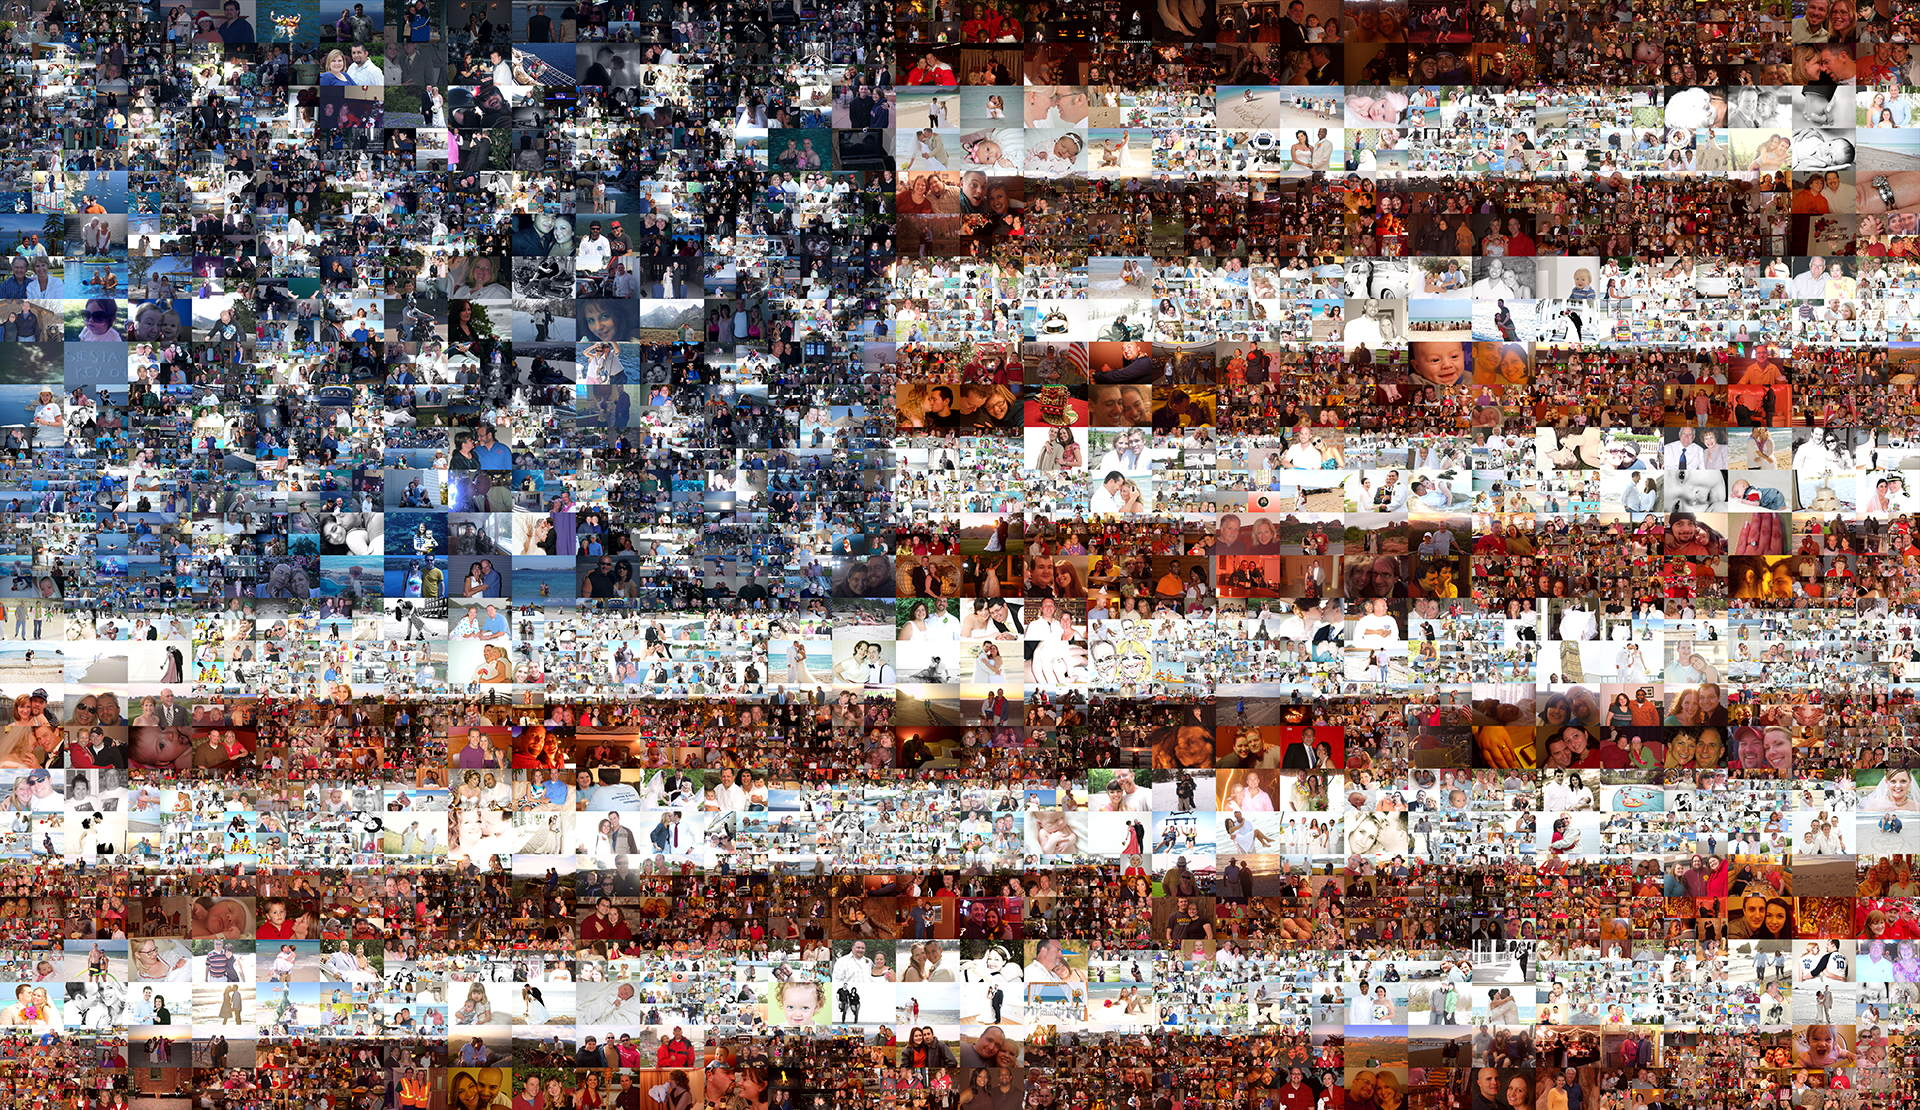 photo mosaic A multi-size cell mosaic mural created using over 10,000 select photos